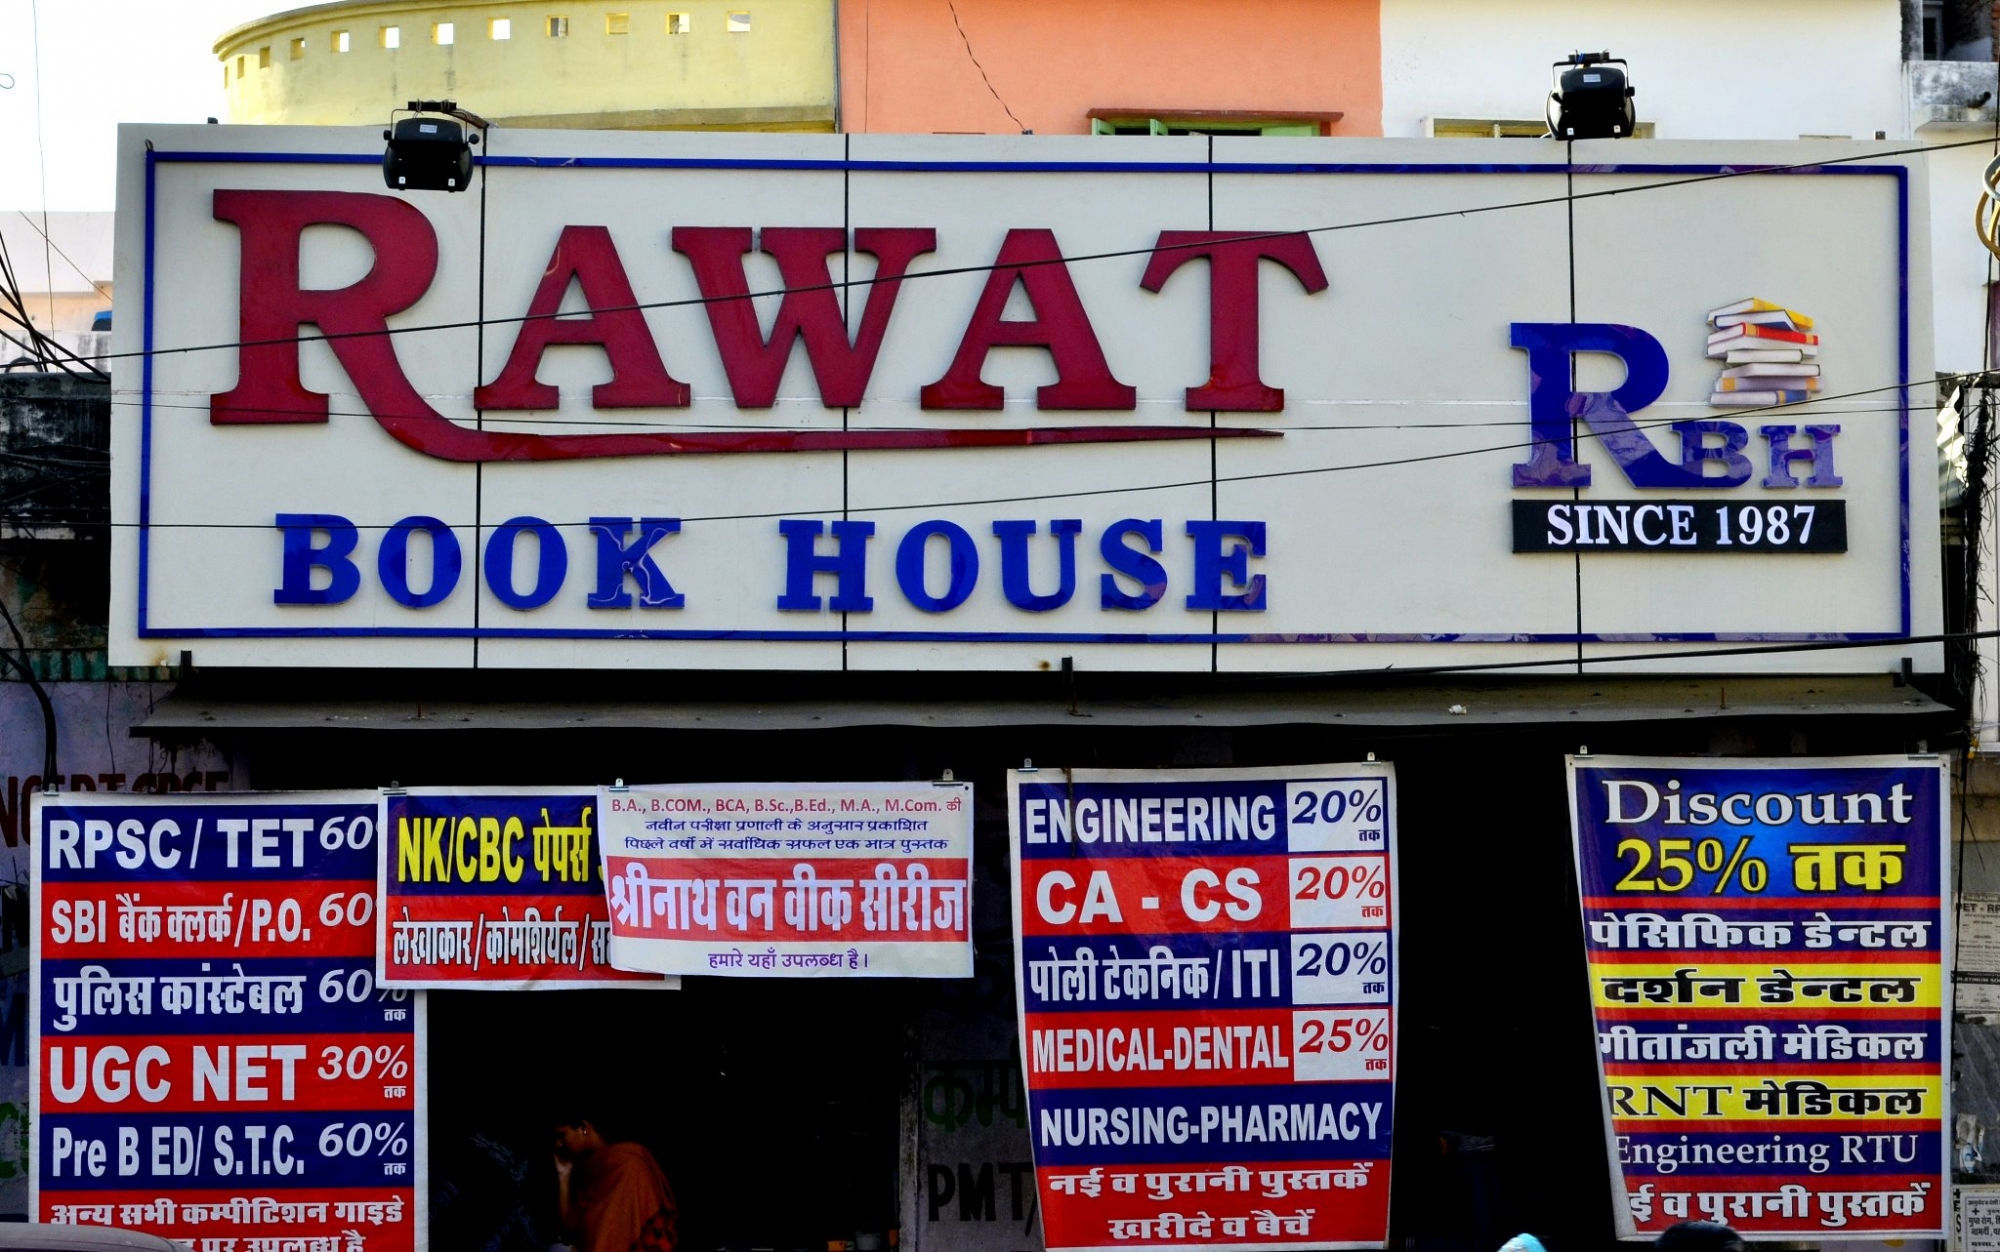 Rawat Book Store Udaipur – Rawat Book & Stationery House in Udaipur